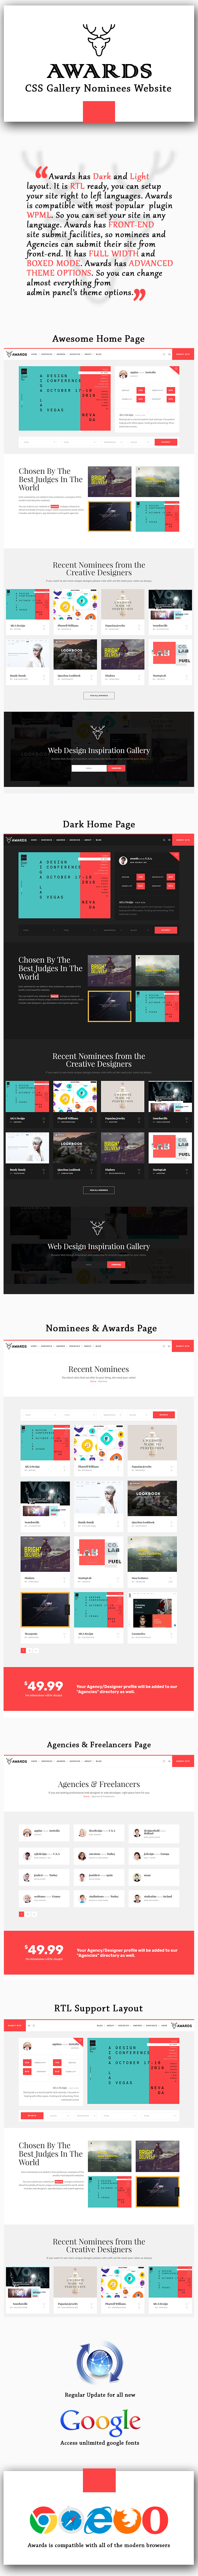 Awards - CSS Gallery Nominees Website Showcase Responsive WordPress Theme